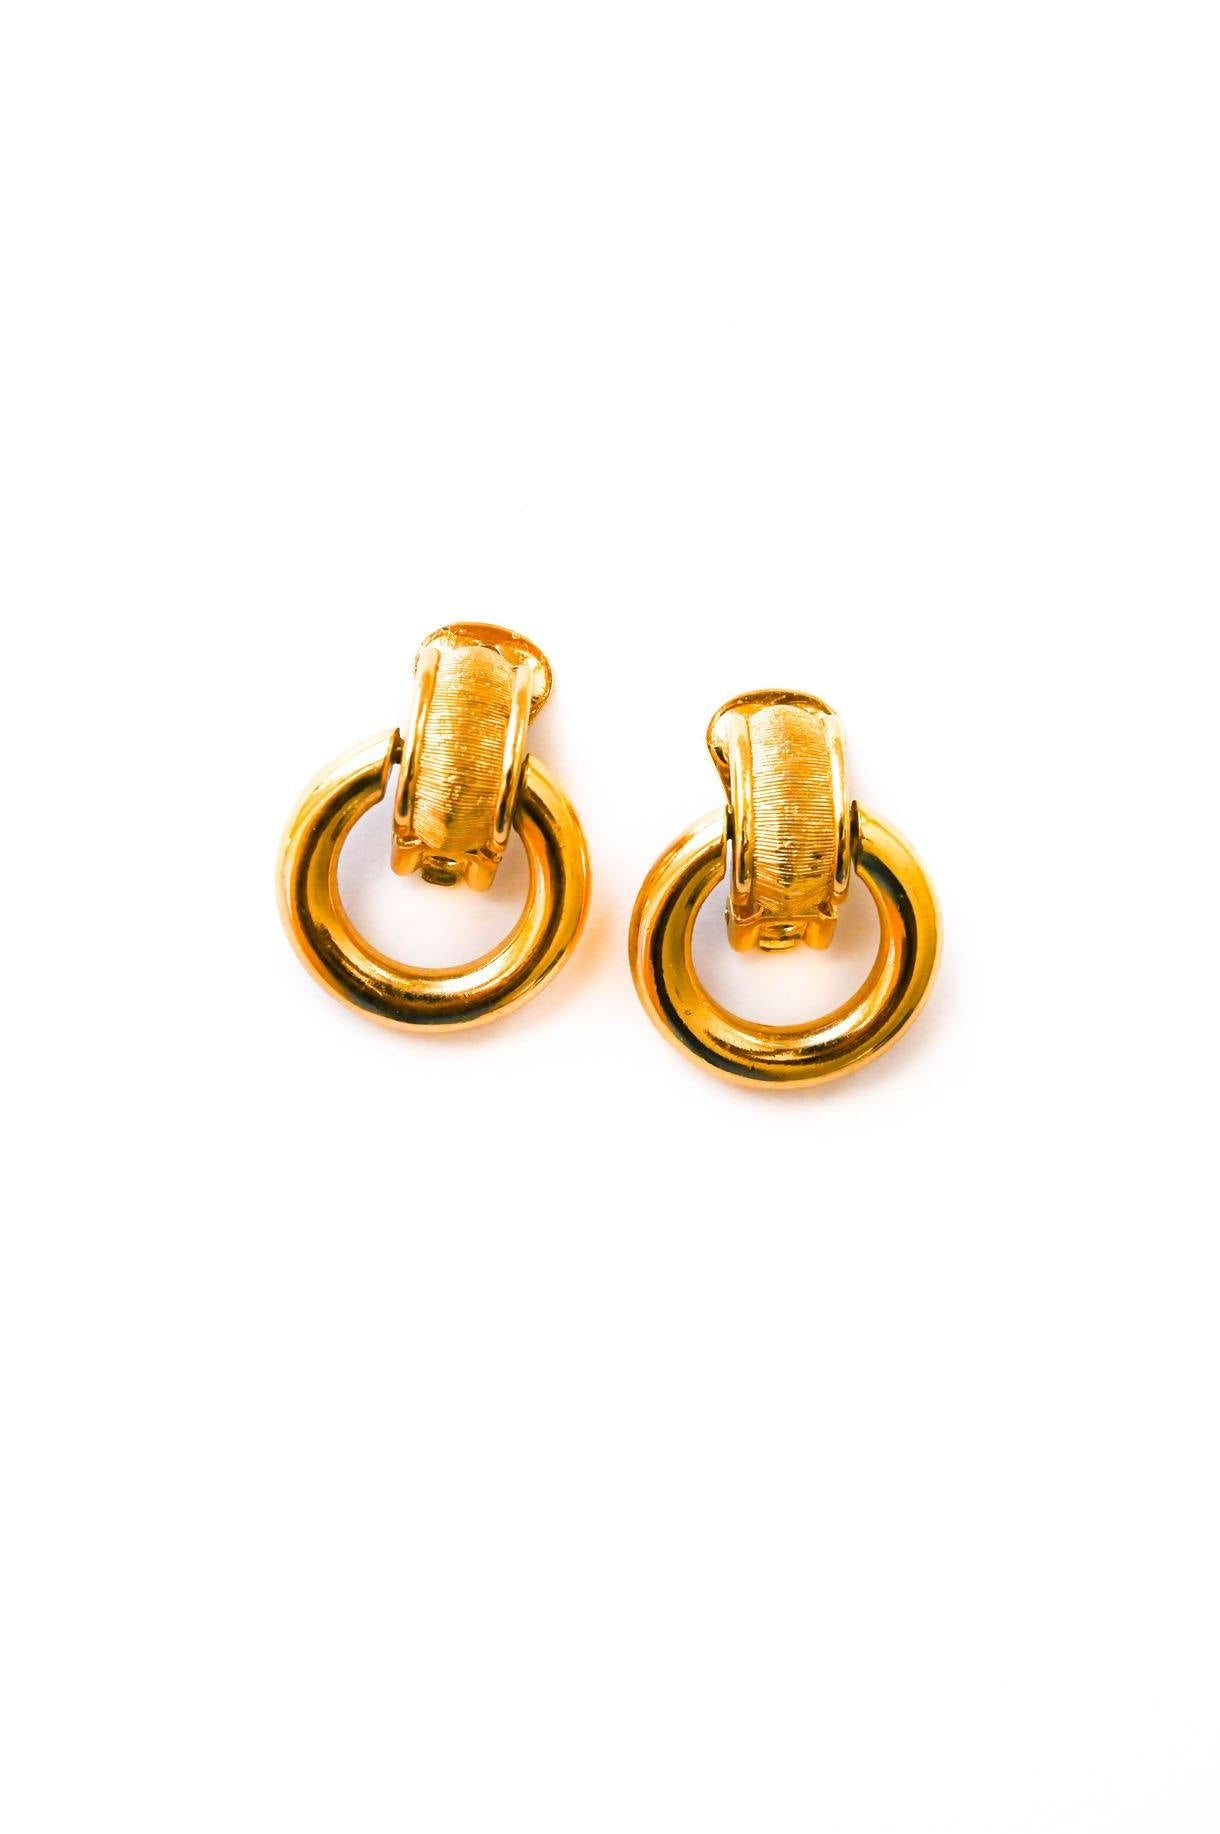 Vintage Christian Dior Door Knocker Earrings from Sweet & Spark.